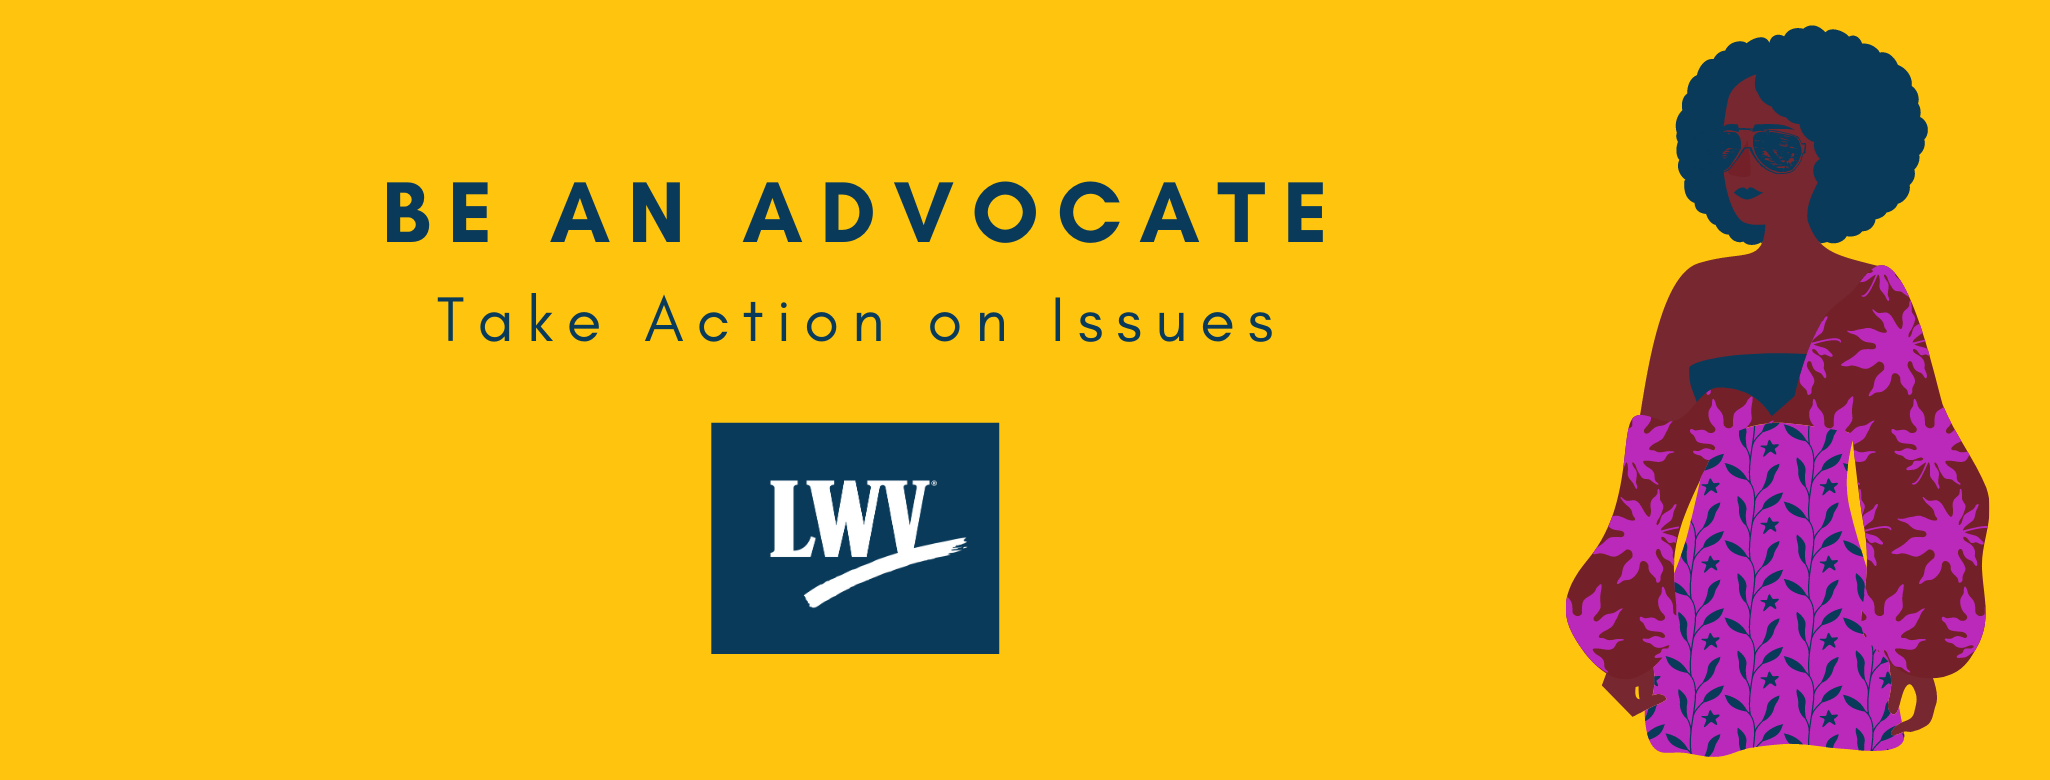 Be an advocate! Take action on issues!